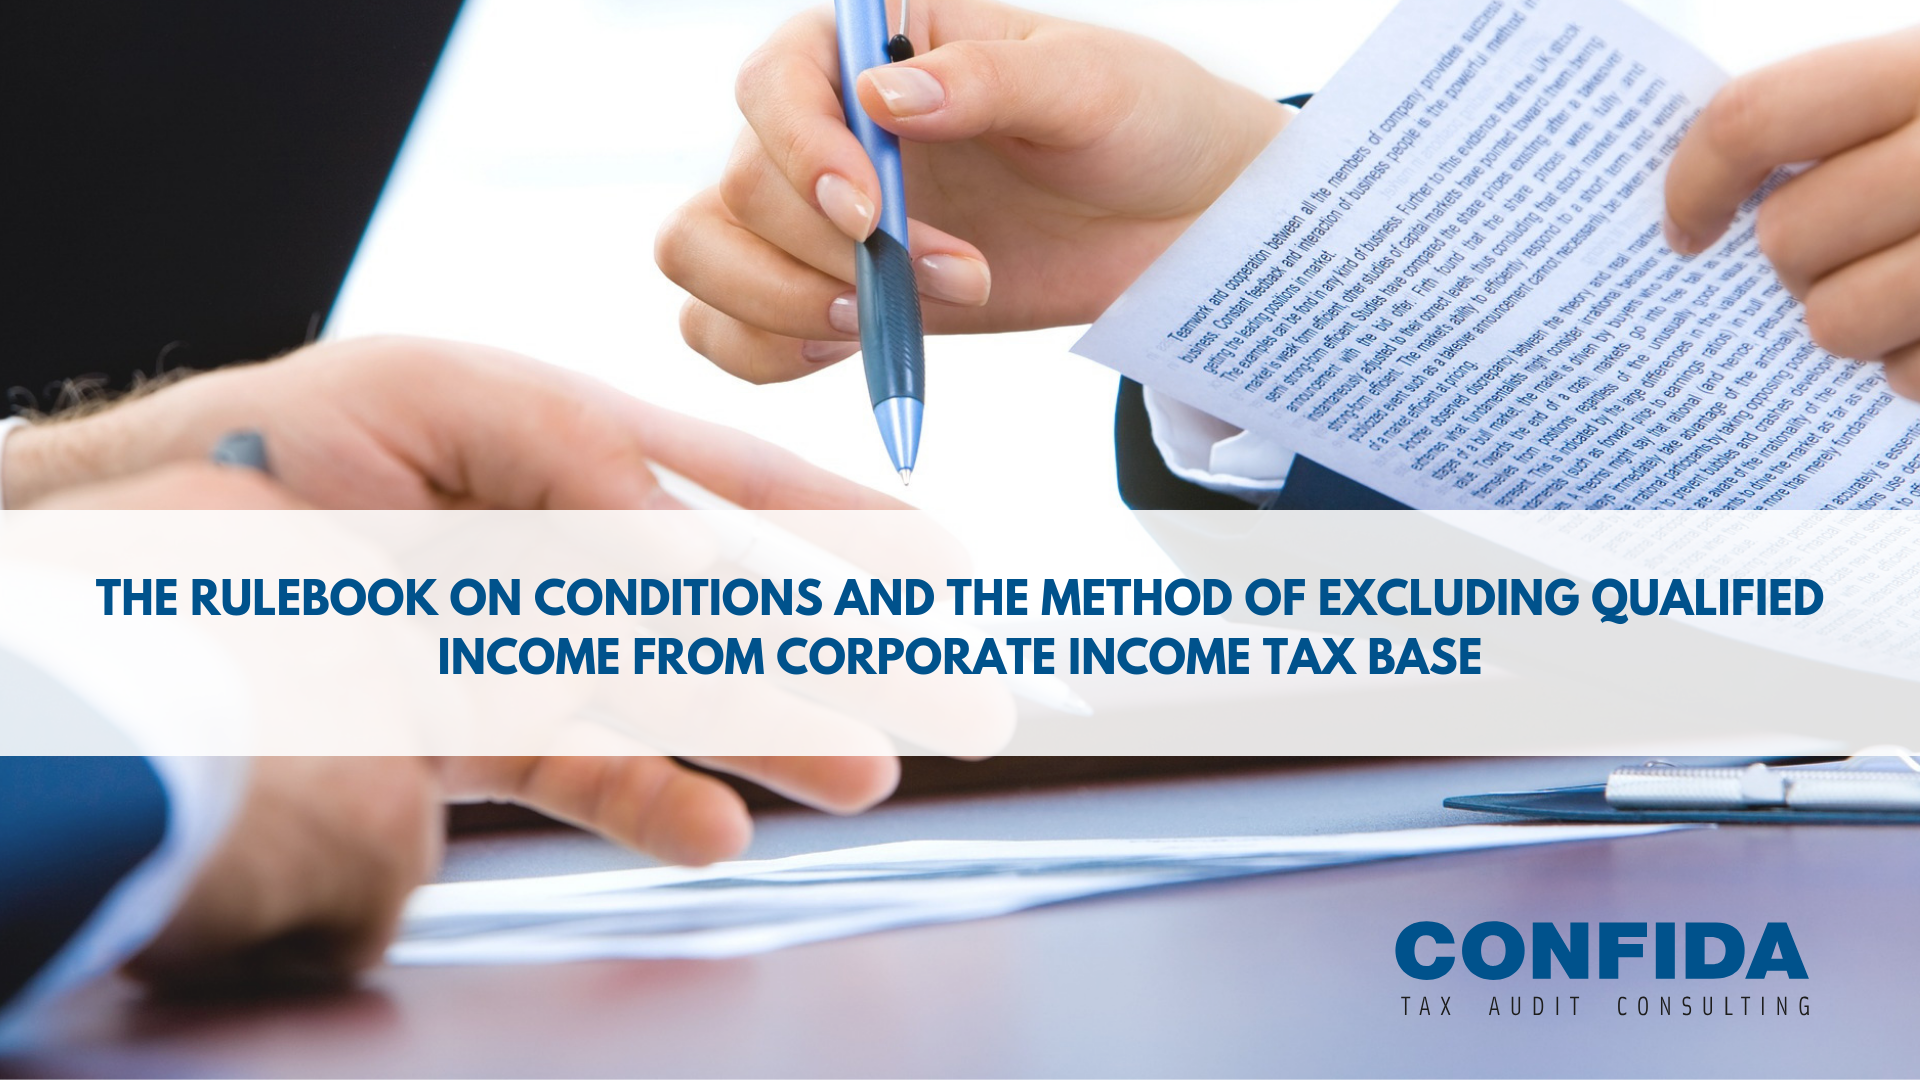 The Rulebook on conditions and the method of excluding qualified income from corporate income tax base